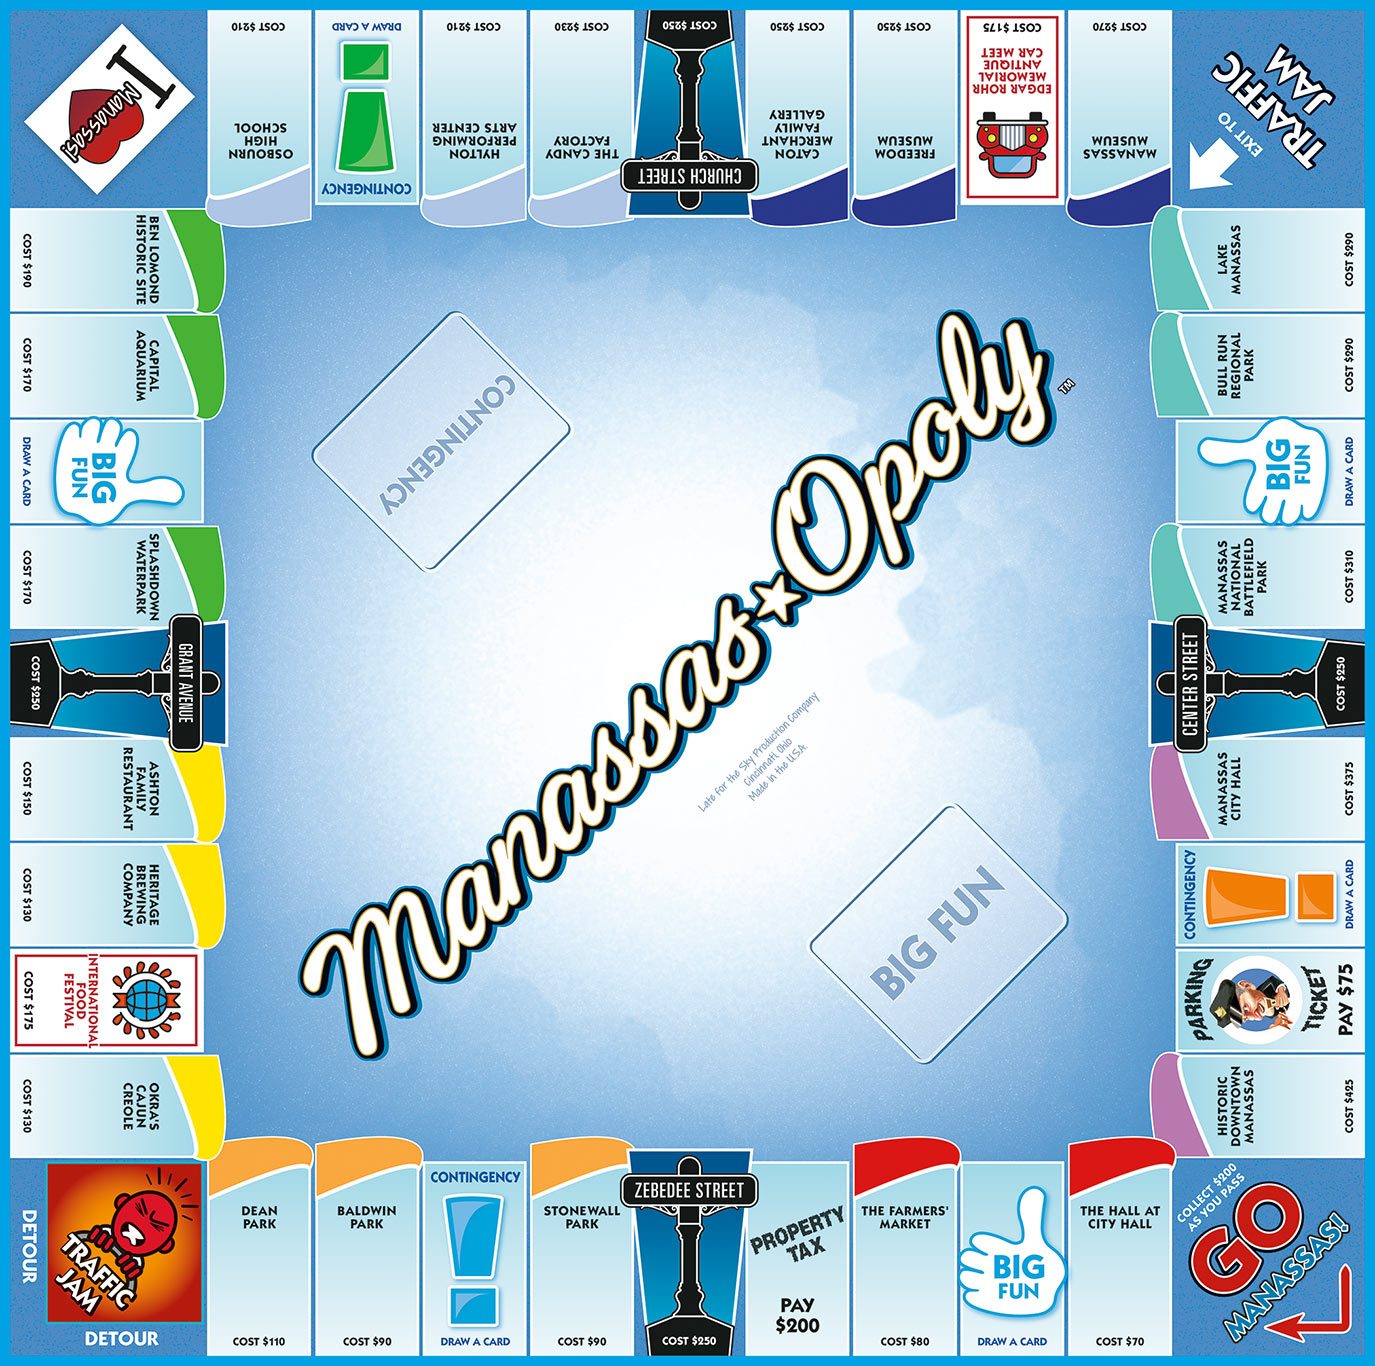 MANASSAS-OPOLY Board Game